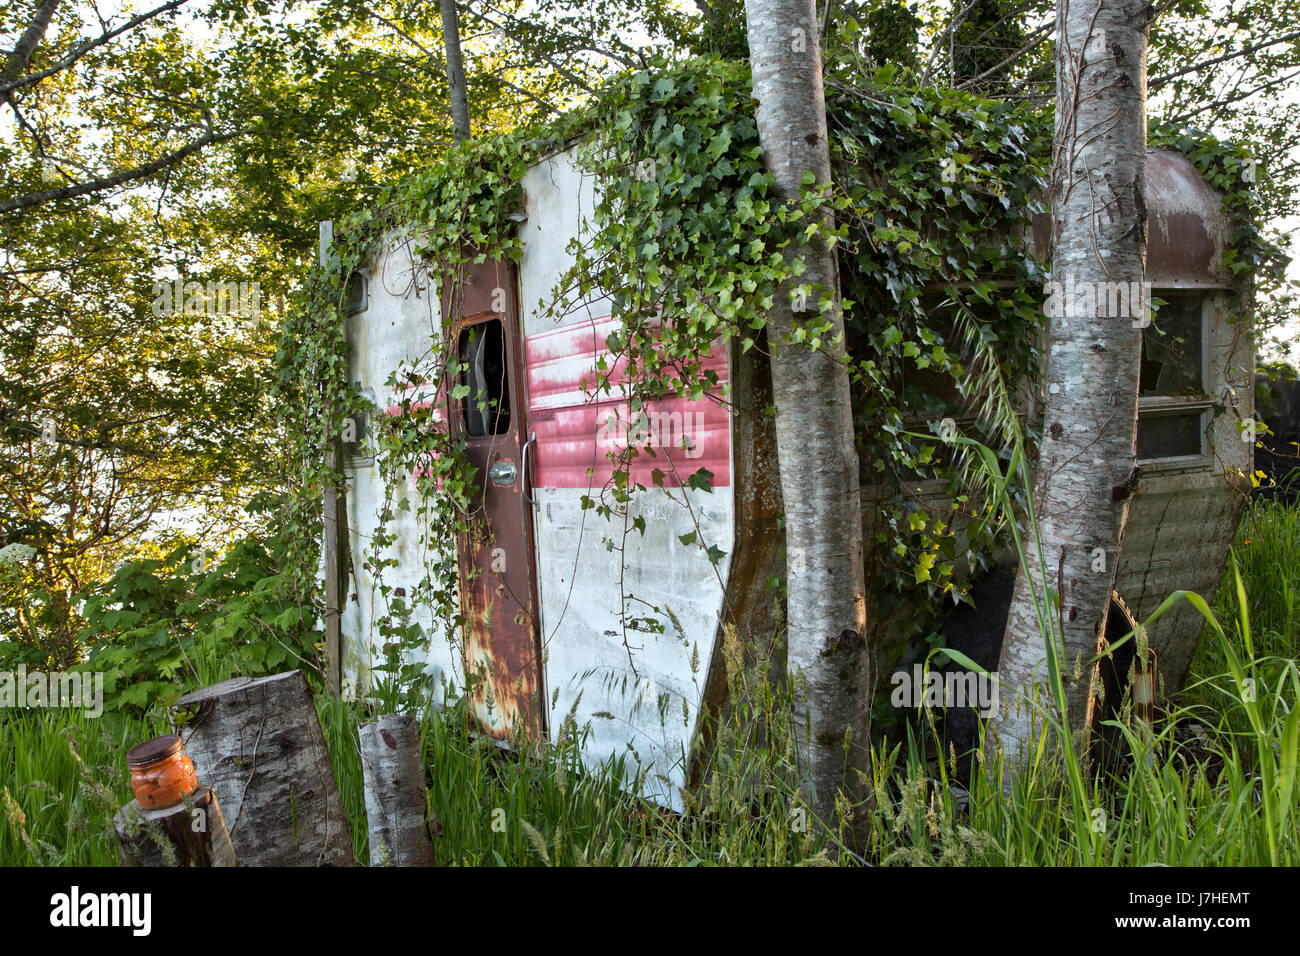 Vintage Travel Trailer Tour-A-Home, with encroaching Spanish Ivy,  resting under a grove of Alder trees. - Stock Image